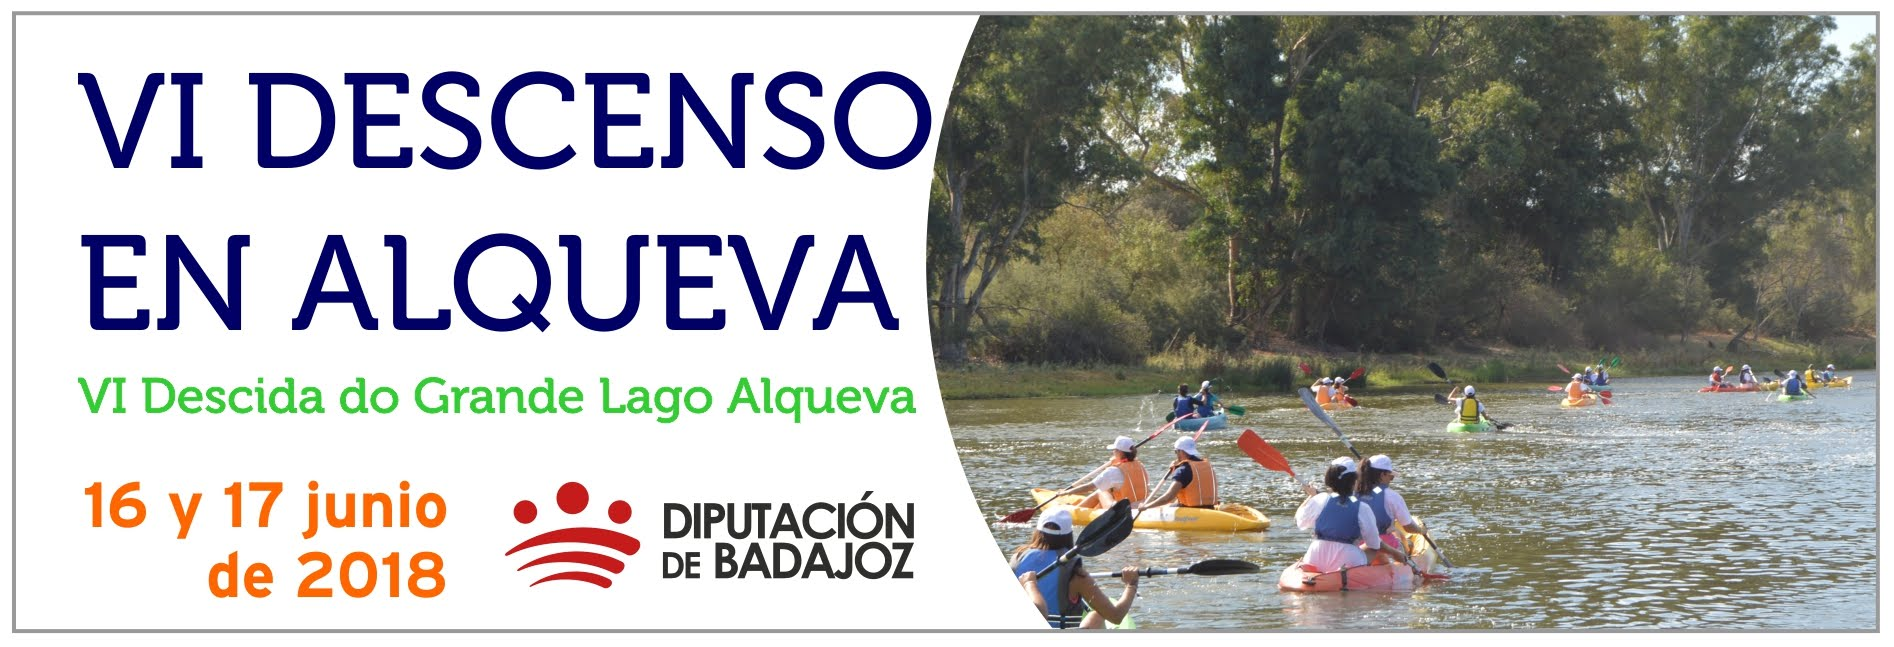 https://sites.google.com/a/alcorextremadura.org/www/eventos-y-promocion/descenso-alqueva/Logo_Descenso2018web.jpg